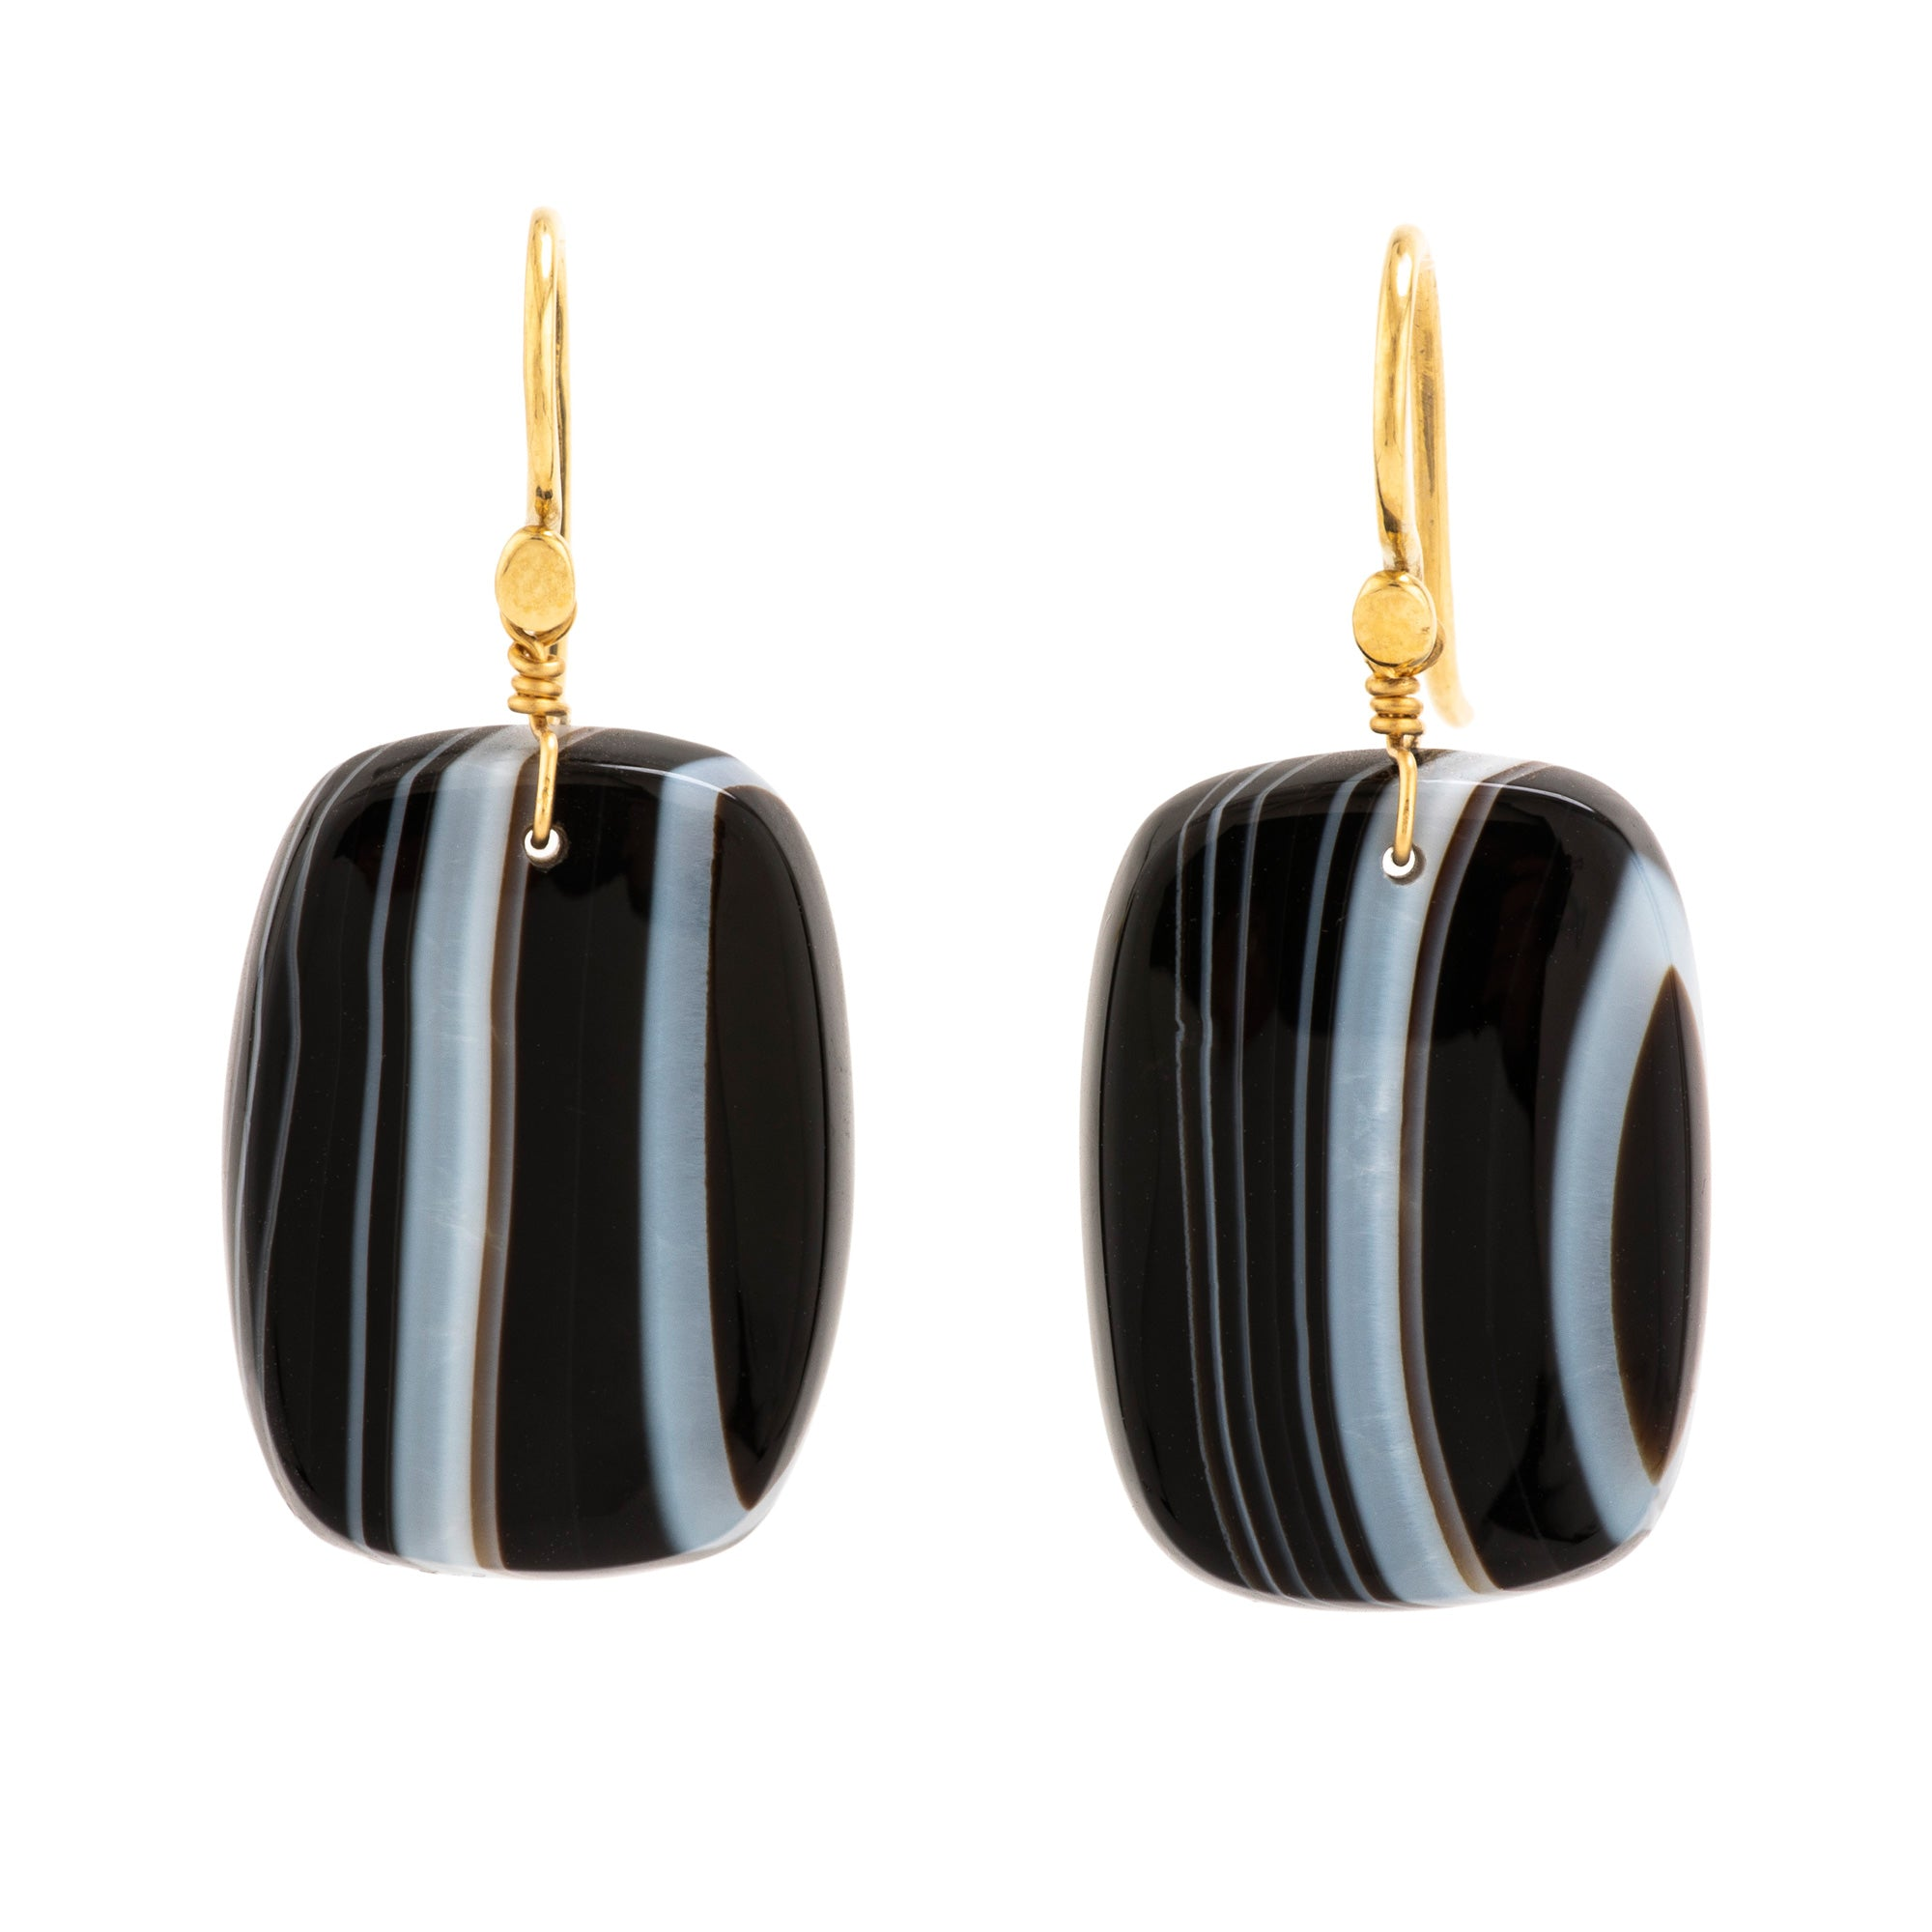 STRIPE I agate earrings